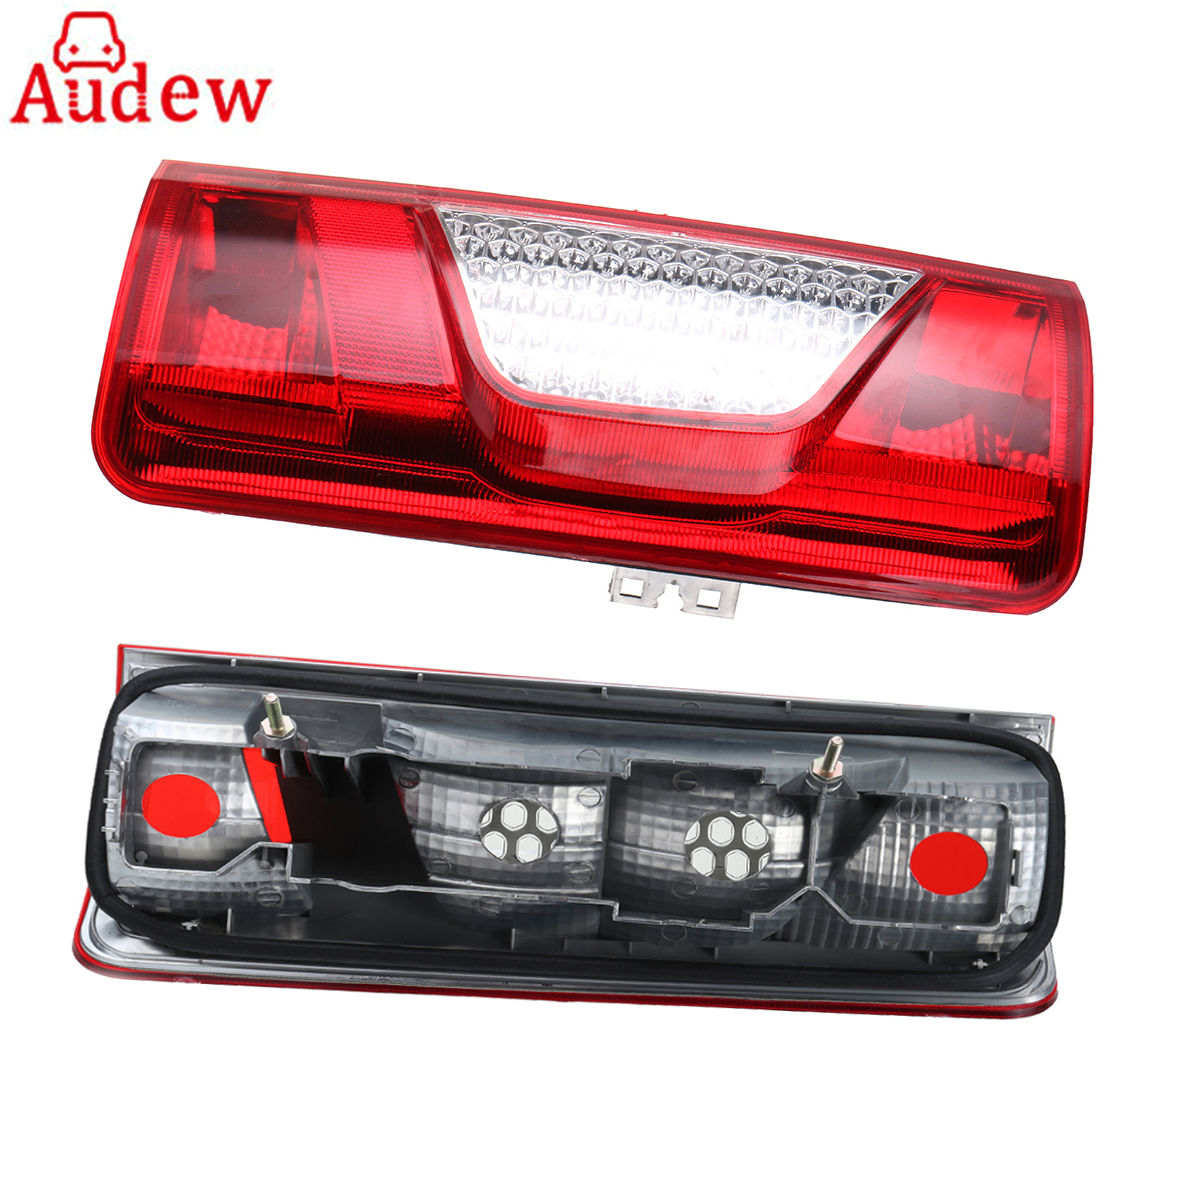 1Pcs Right/Left Car Tail Lamp Light Lens Replacement For Ford Transit/Connect 2009-2014 цены